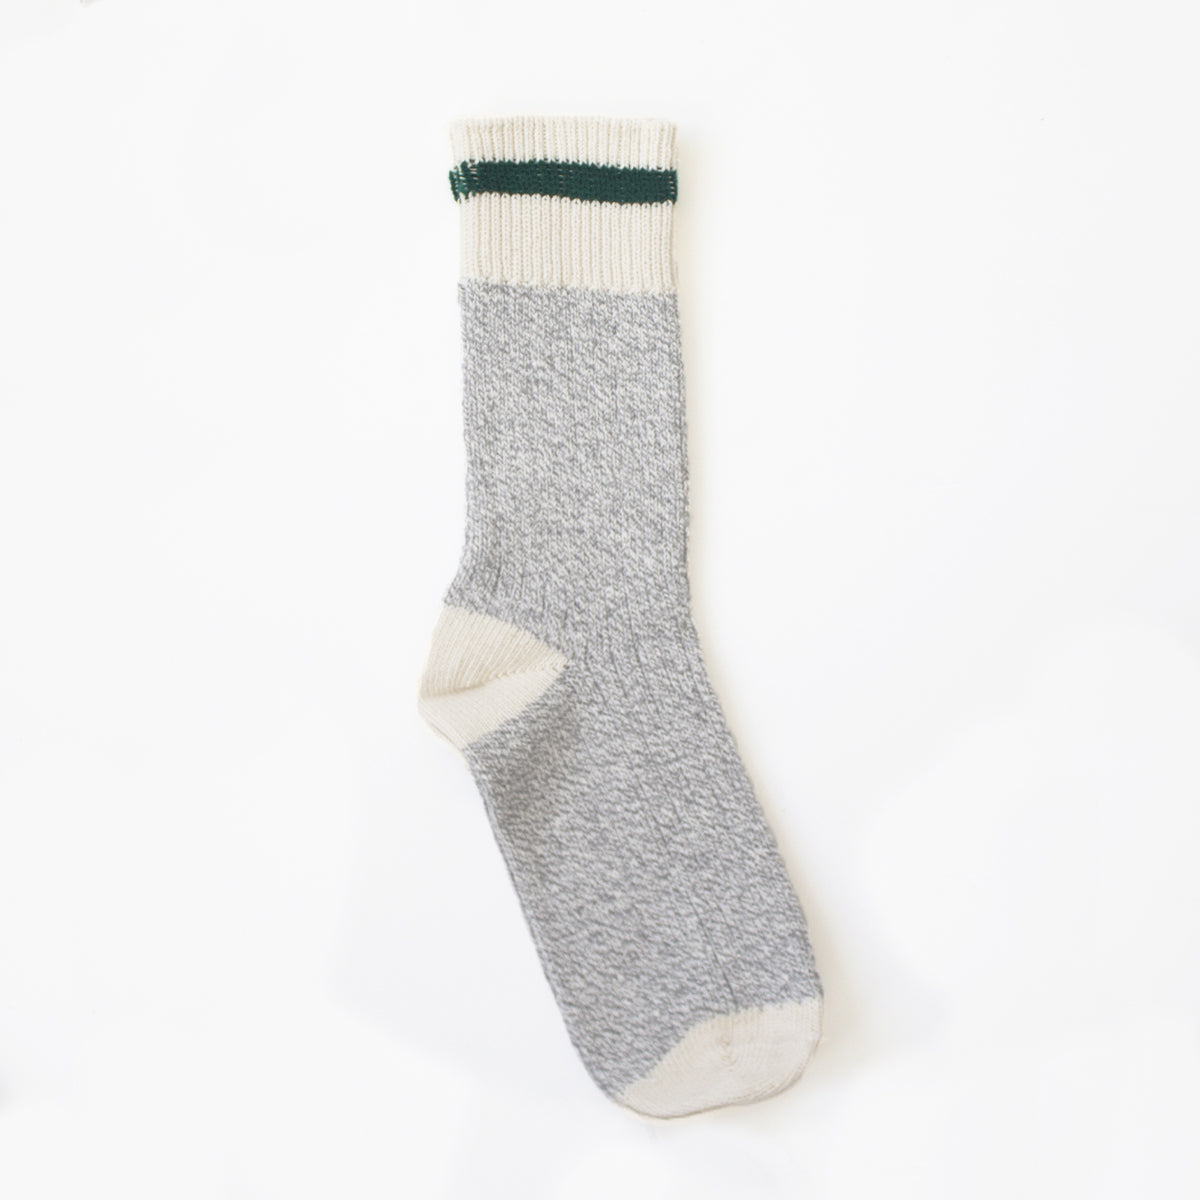 The Fair Cabin Sock